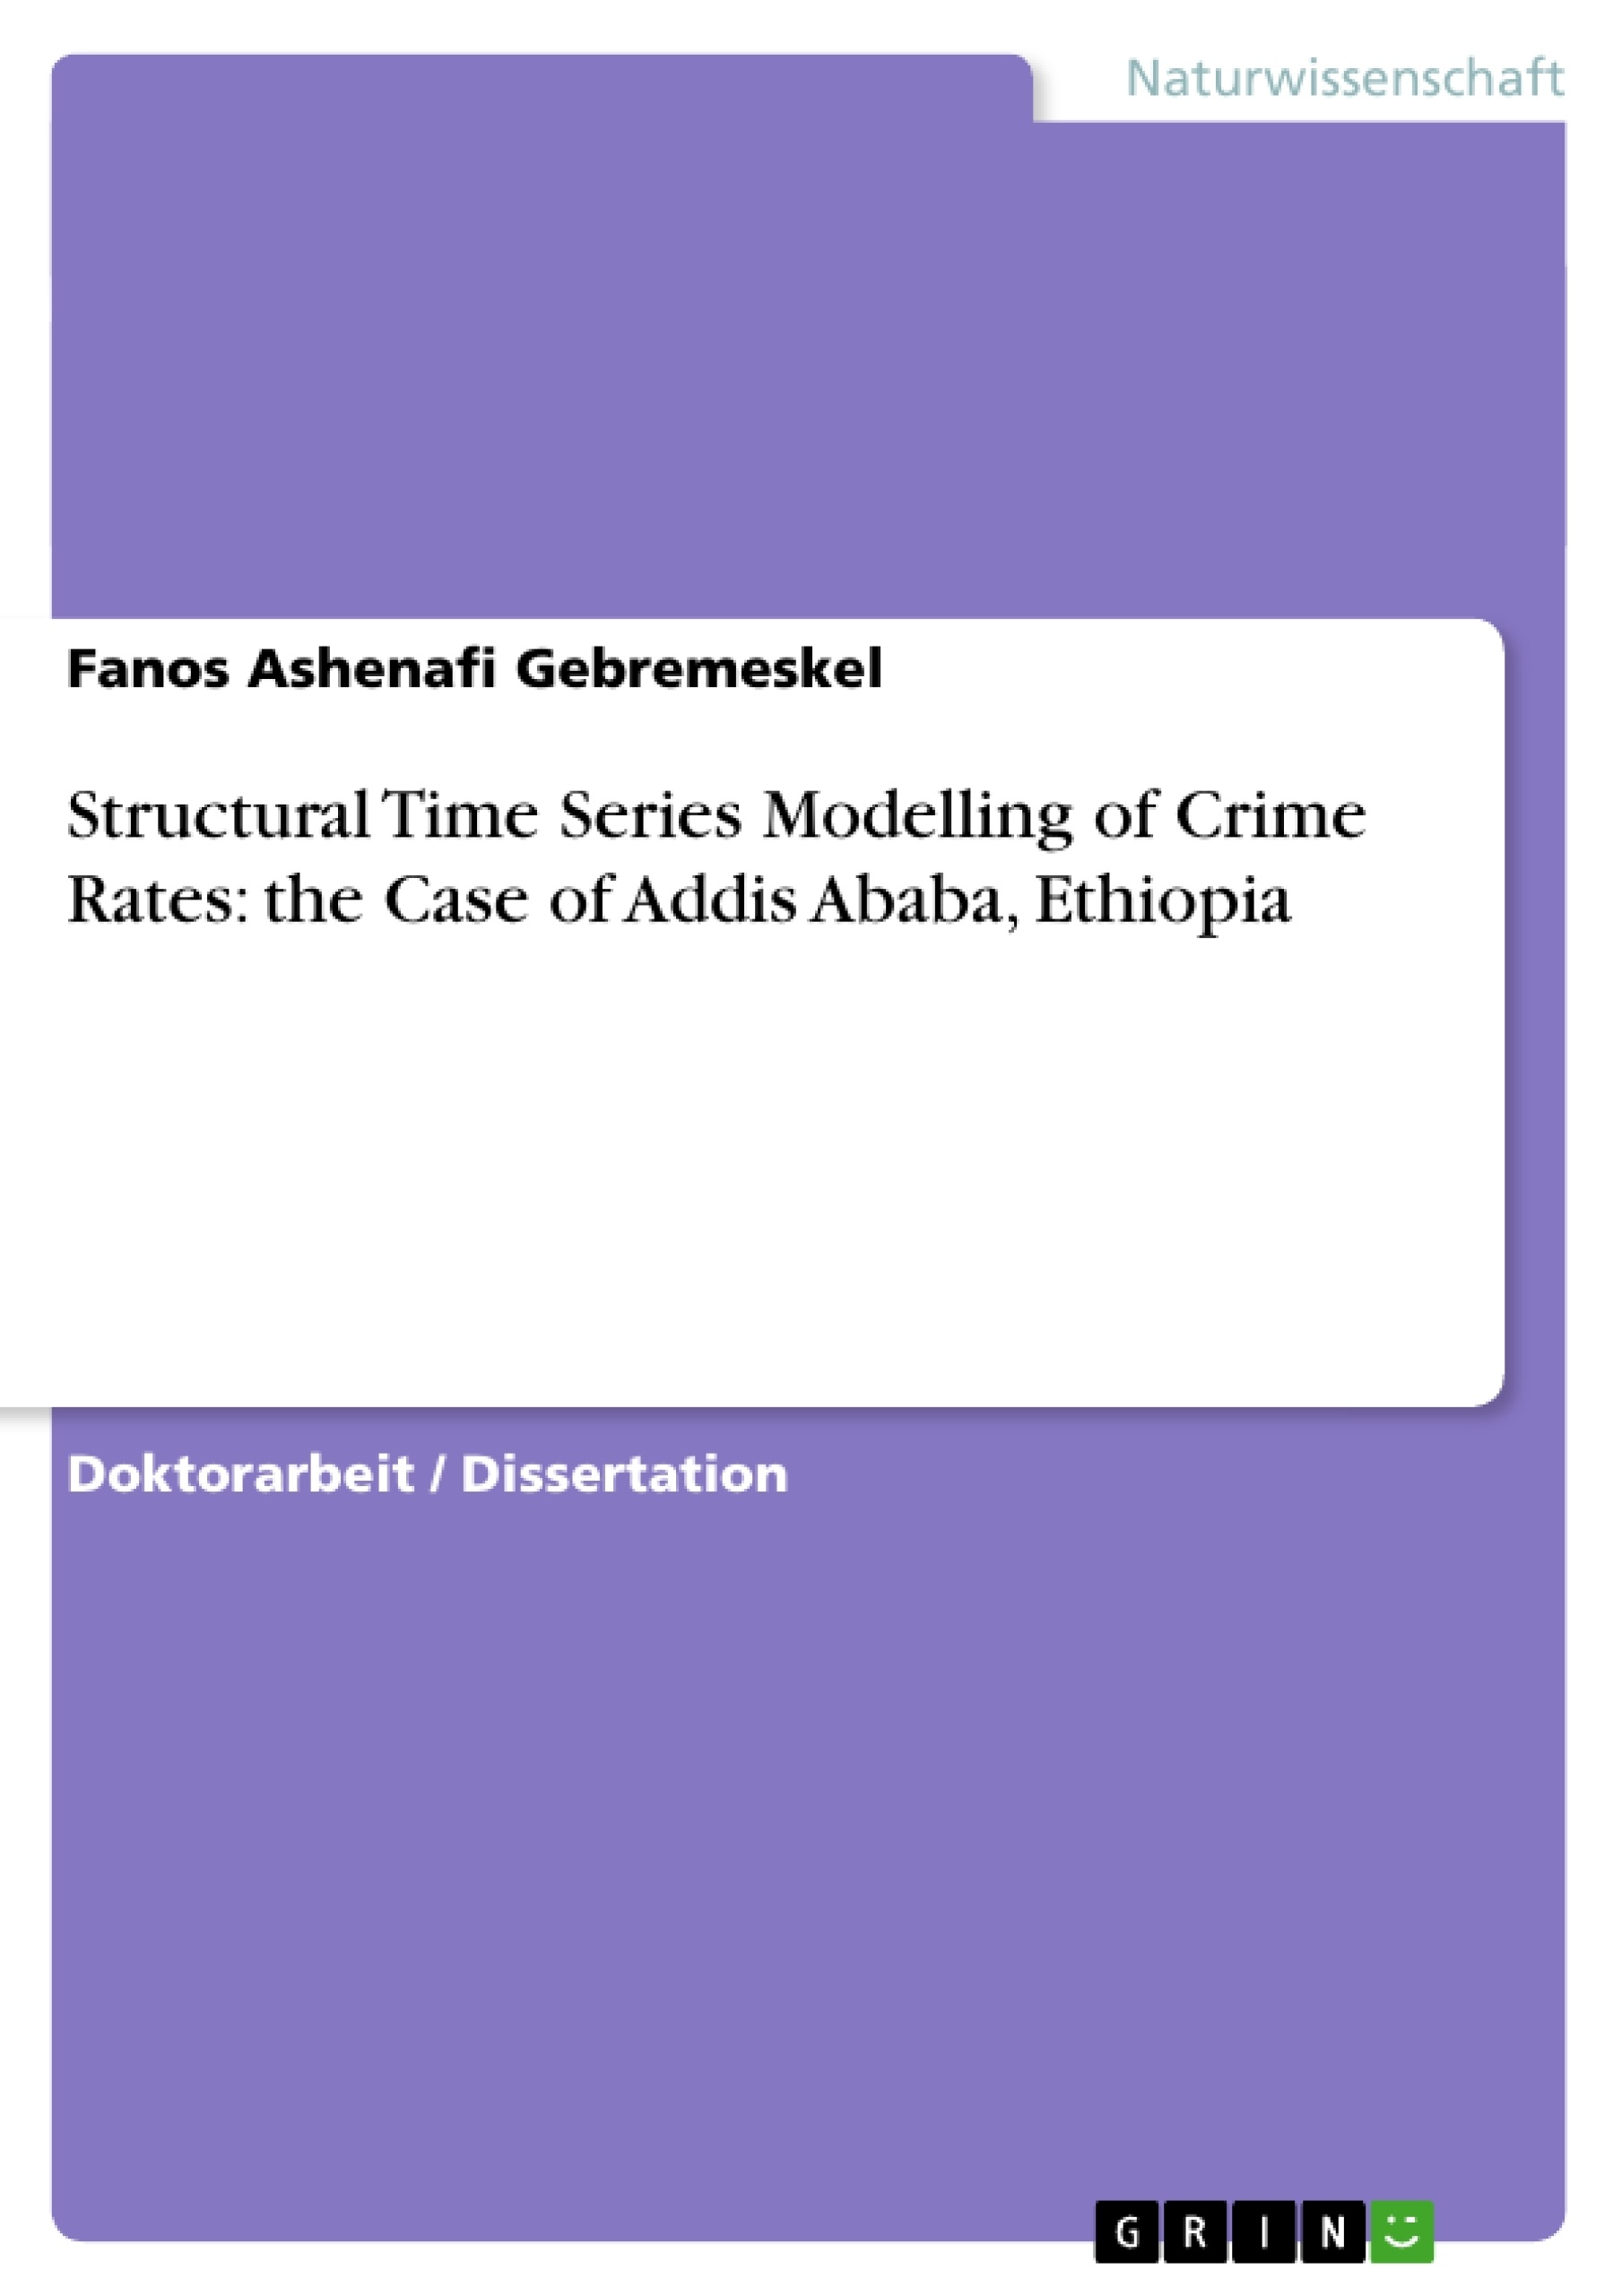 Titel: Structural Time Series Modelling of Crime Rates: the Case of Addis Ababa, Ethiopia